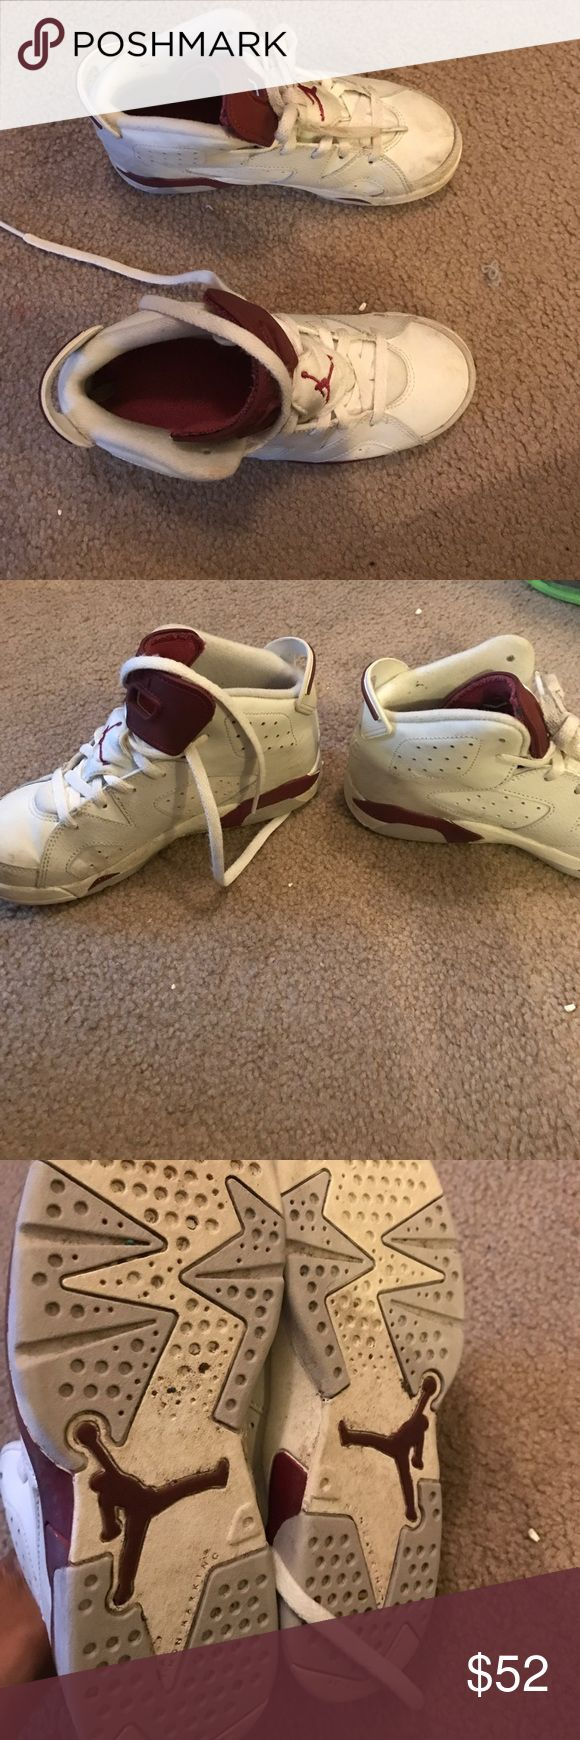 Kids Jordan's retros Kids Jordan's white and Burgundy....good condition needs wiped off that's it!!! Jordan Shoes Sneakers